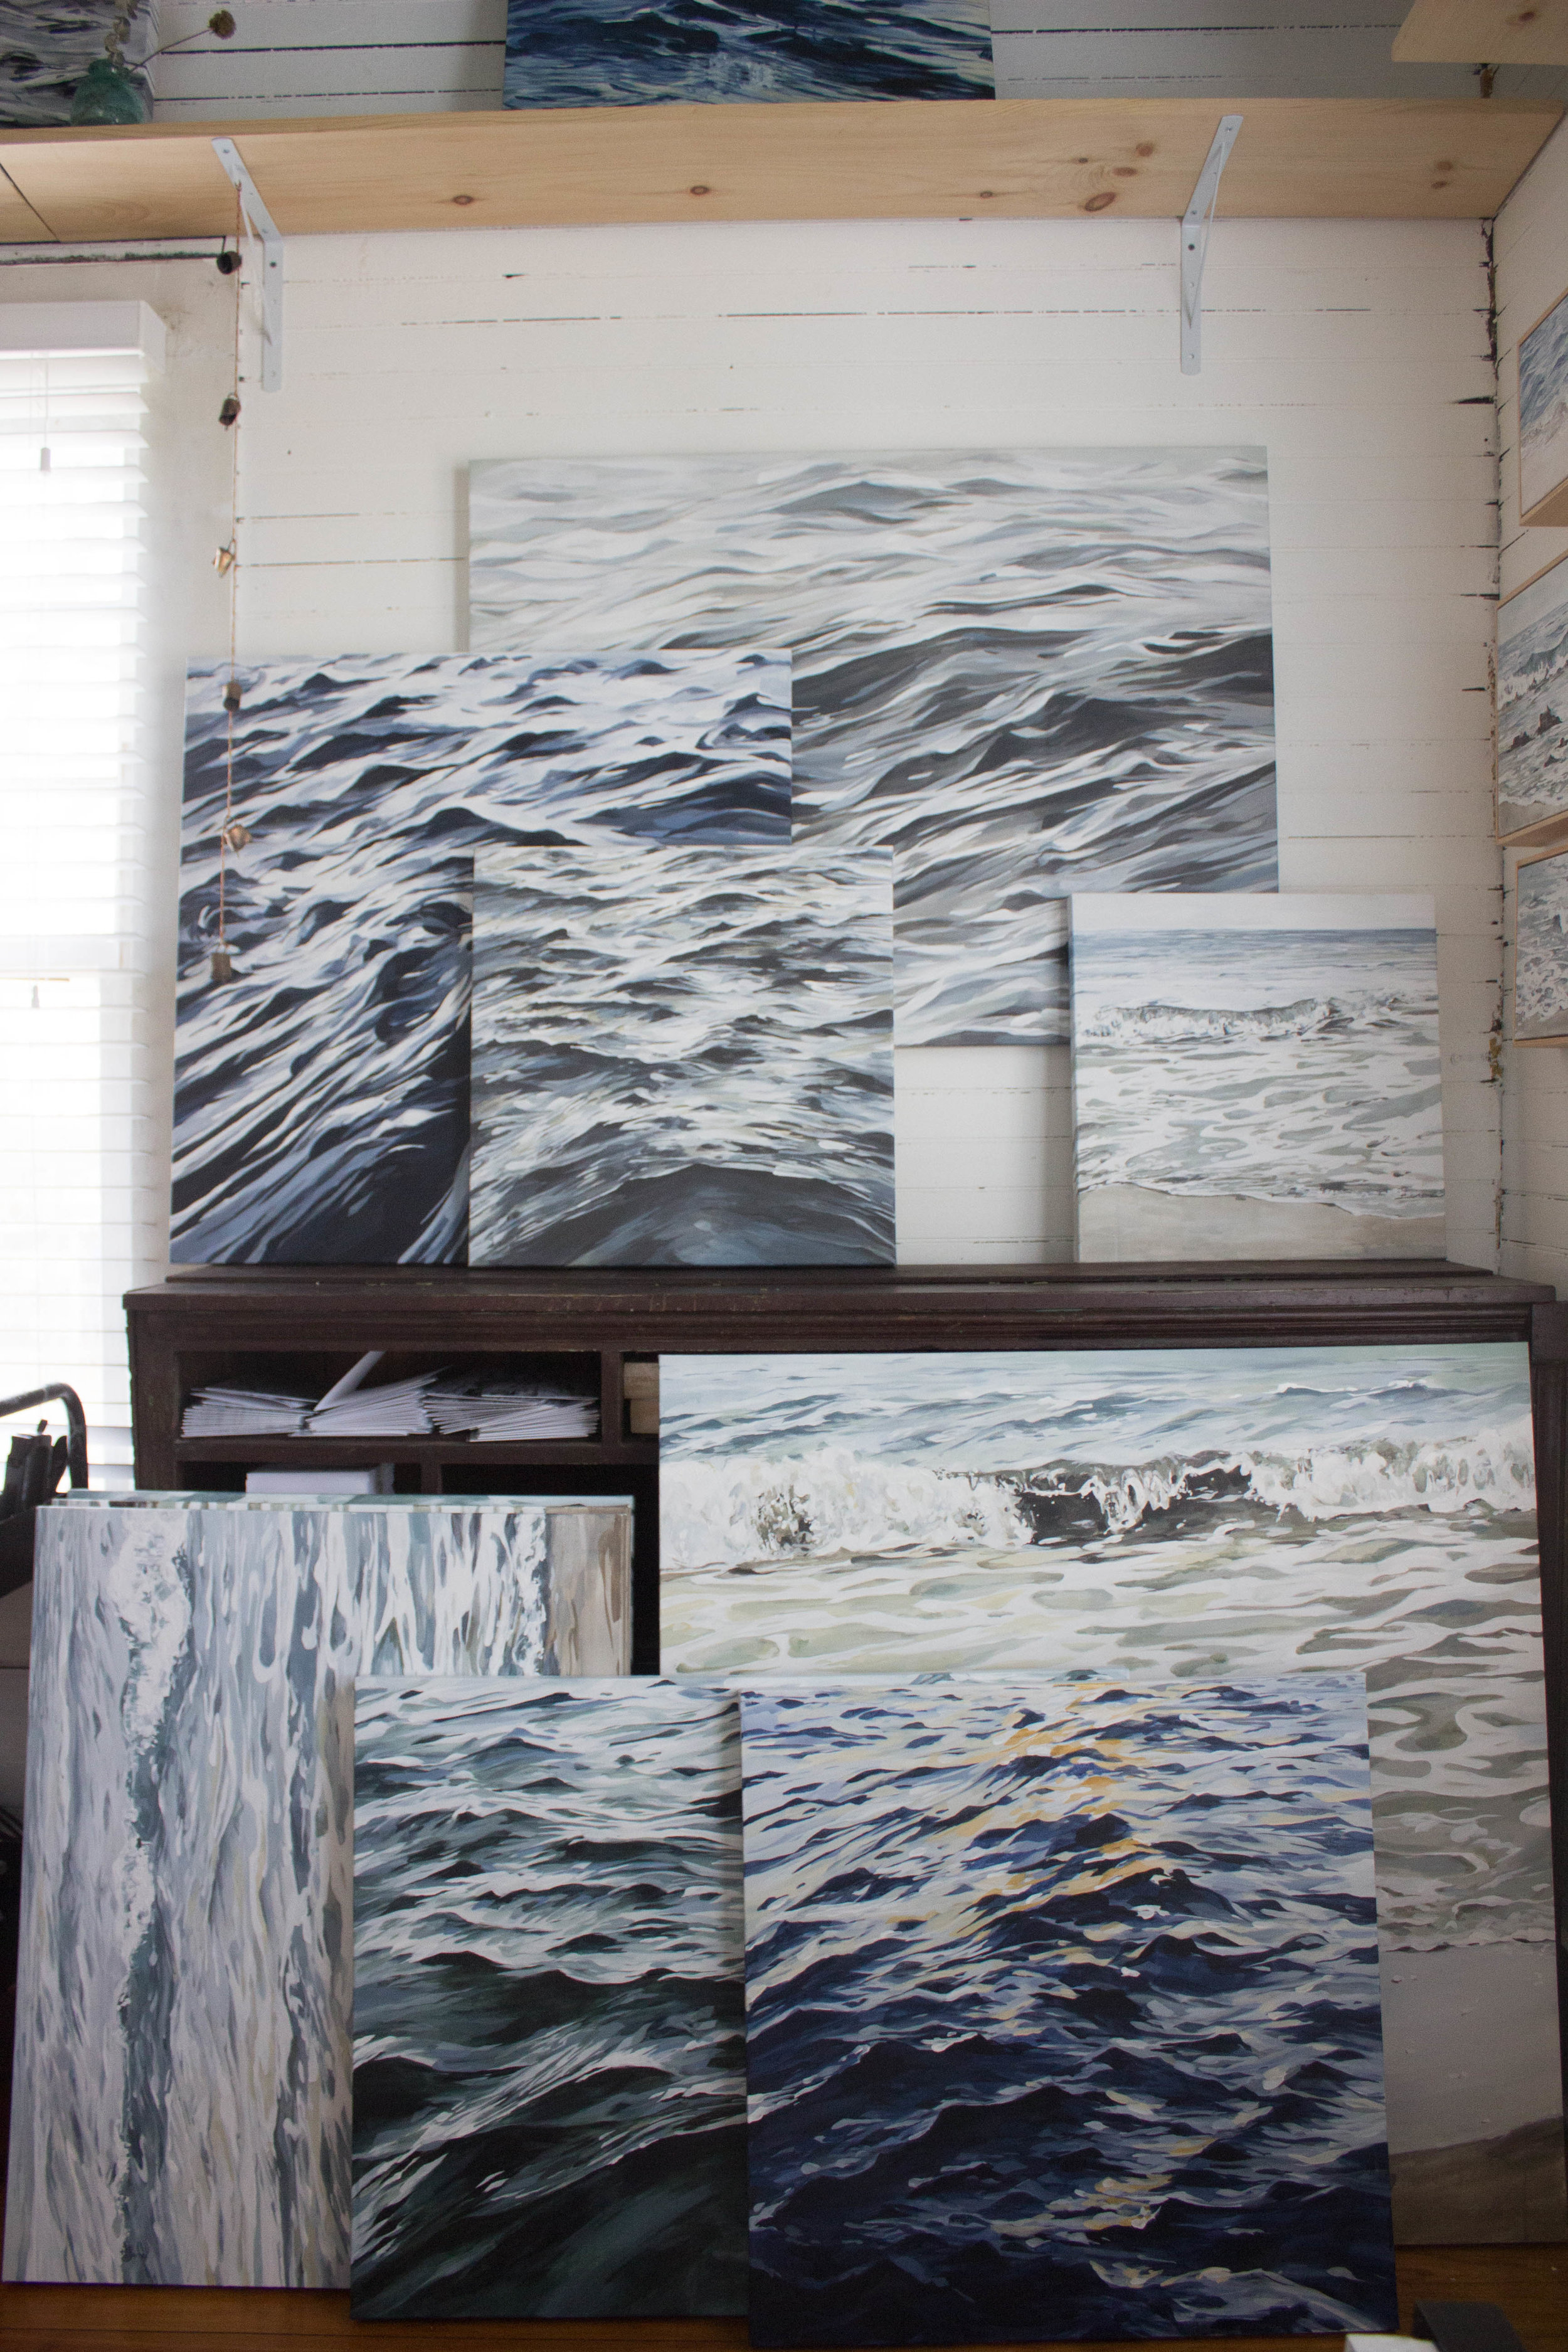 A grouping of paintings completed by Brynn Casey and stored in her studio before a big art release!